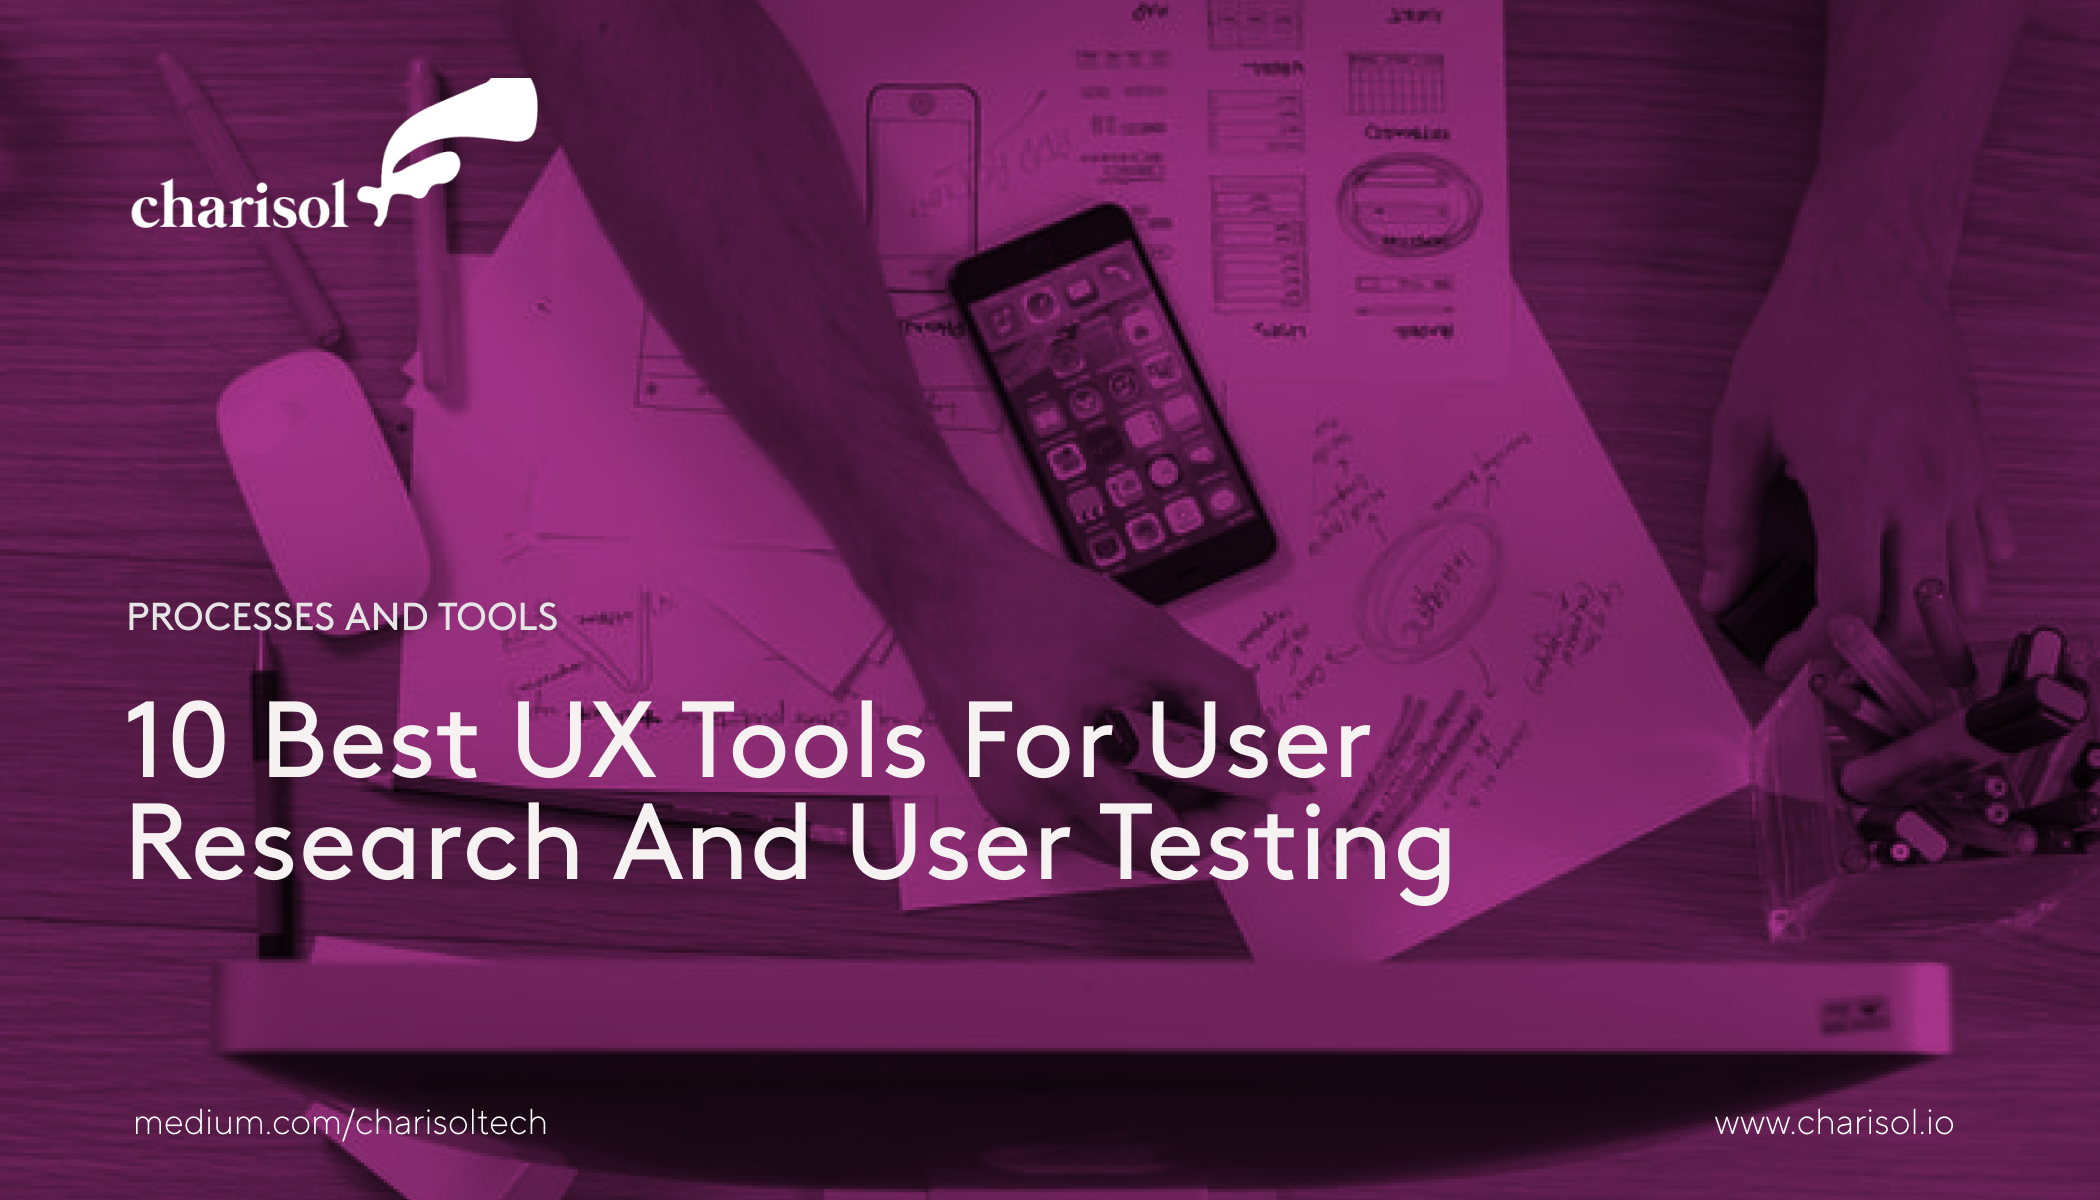 10 Best UX Tools For User Research And User Testing. Pt 2